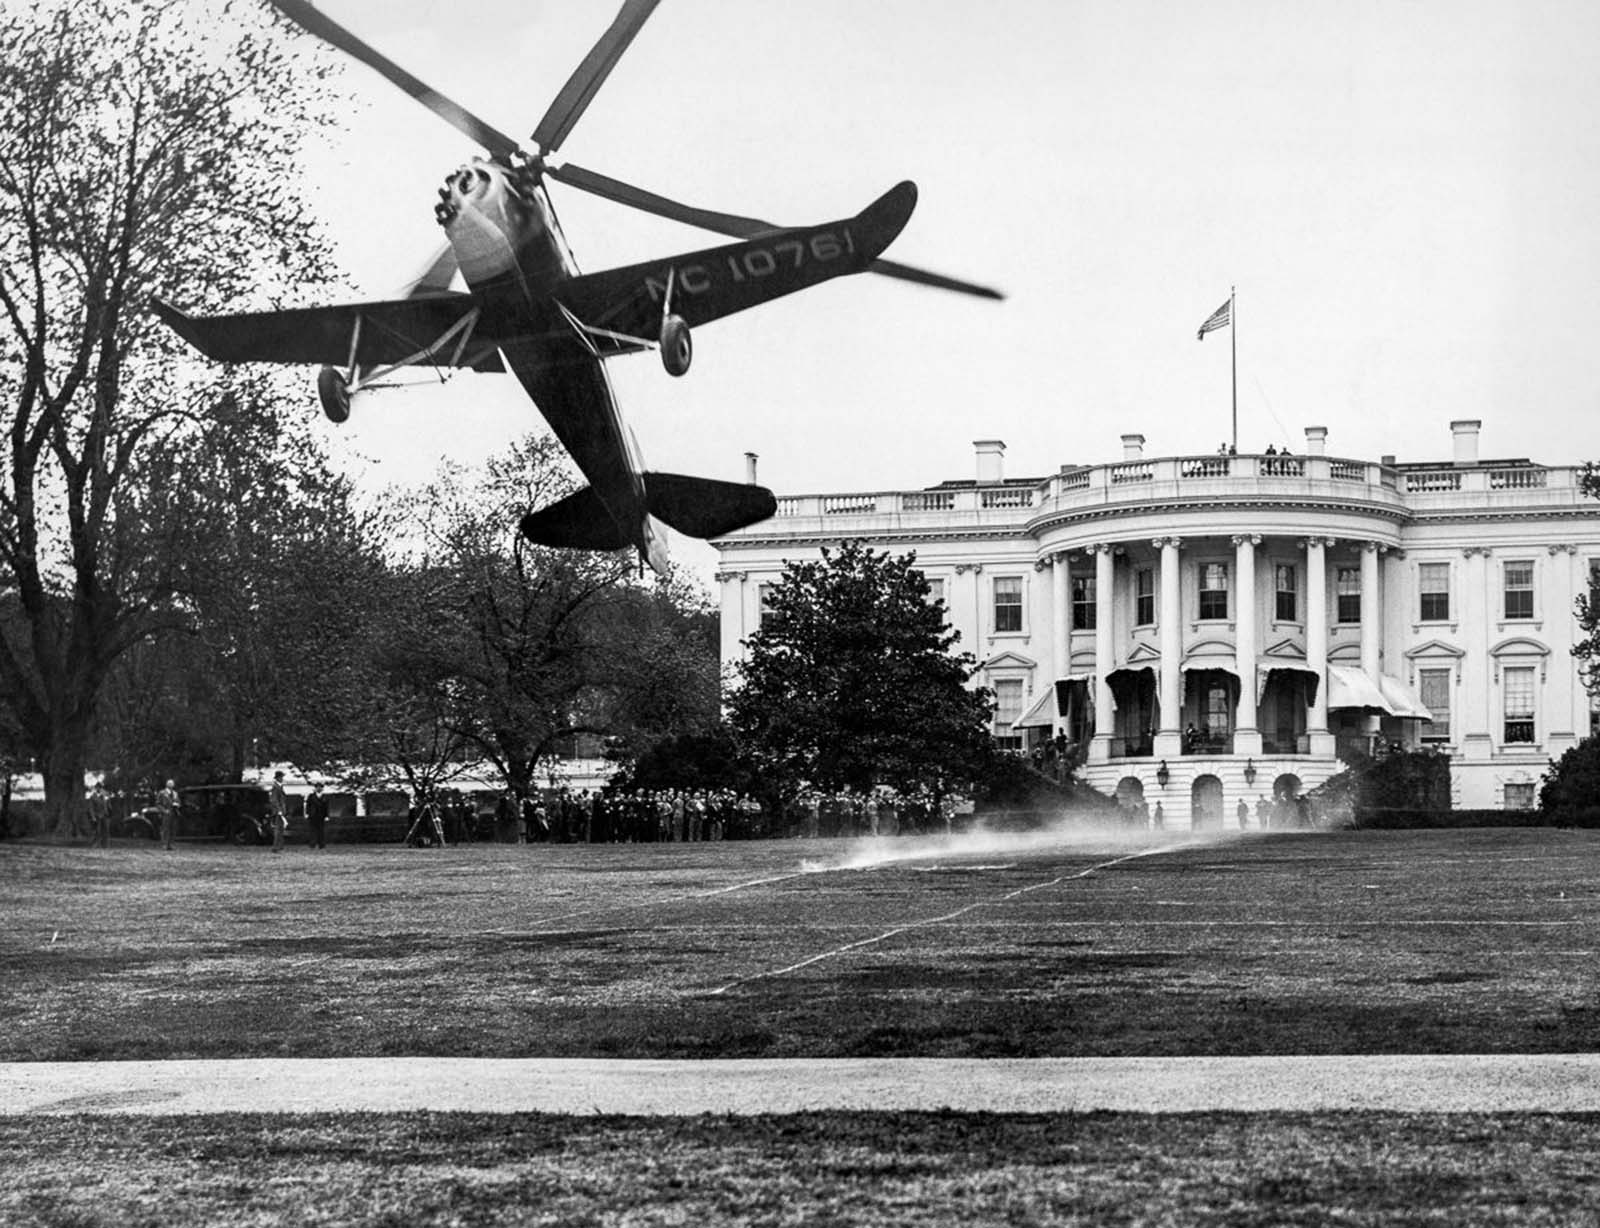 An autogyro takes off after landing on the White House lawn. 1931.